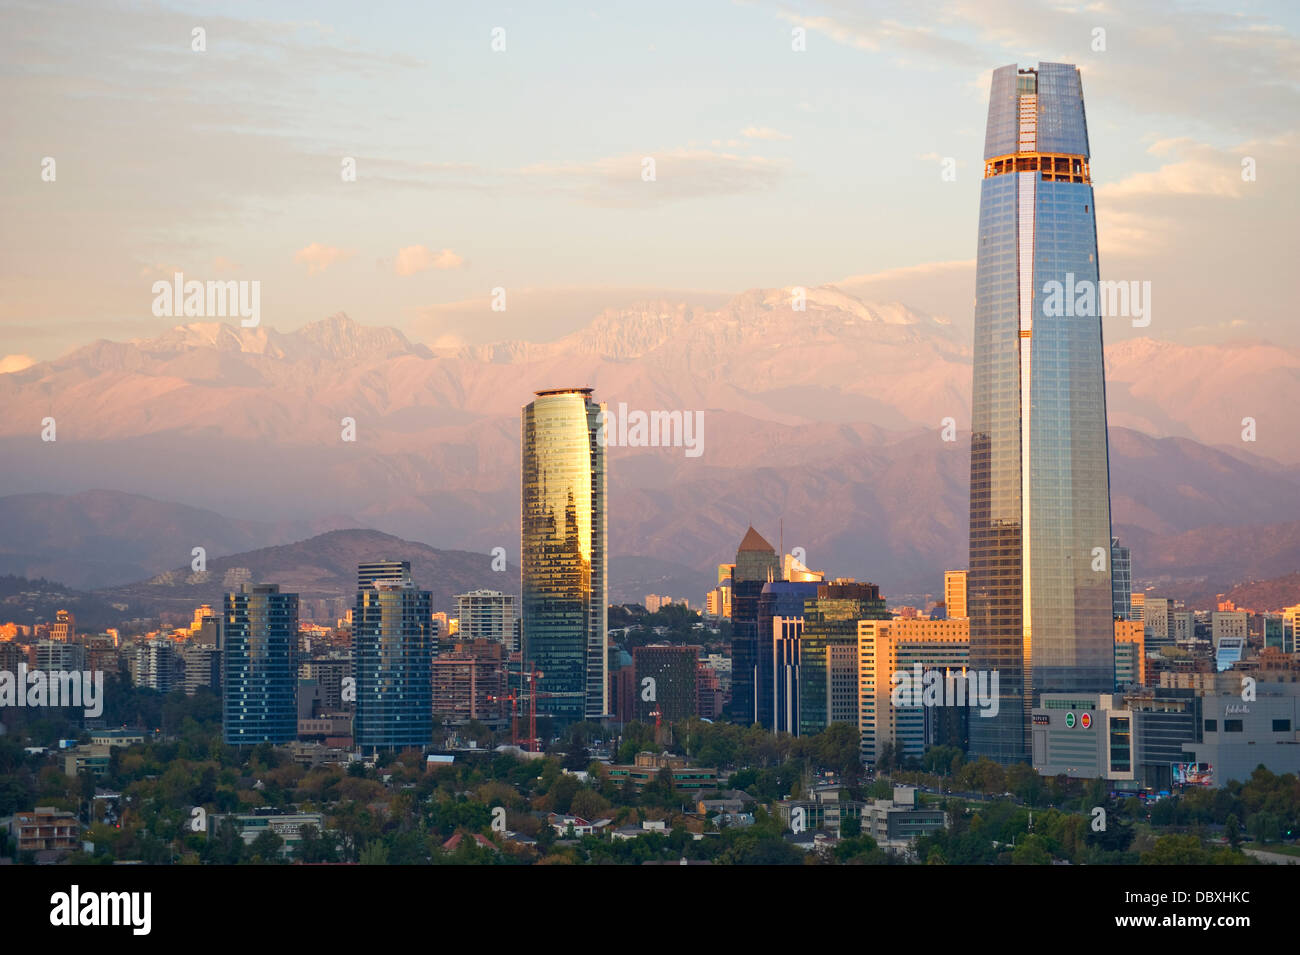 Santiago, Chili skyline Photo Stock